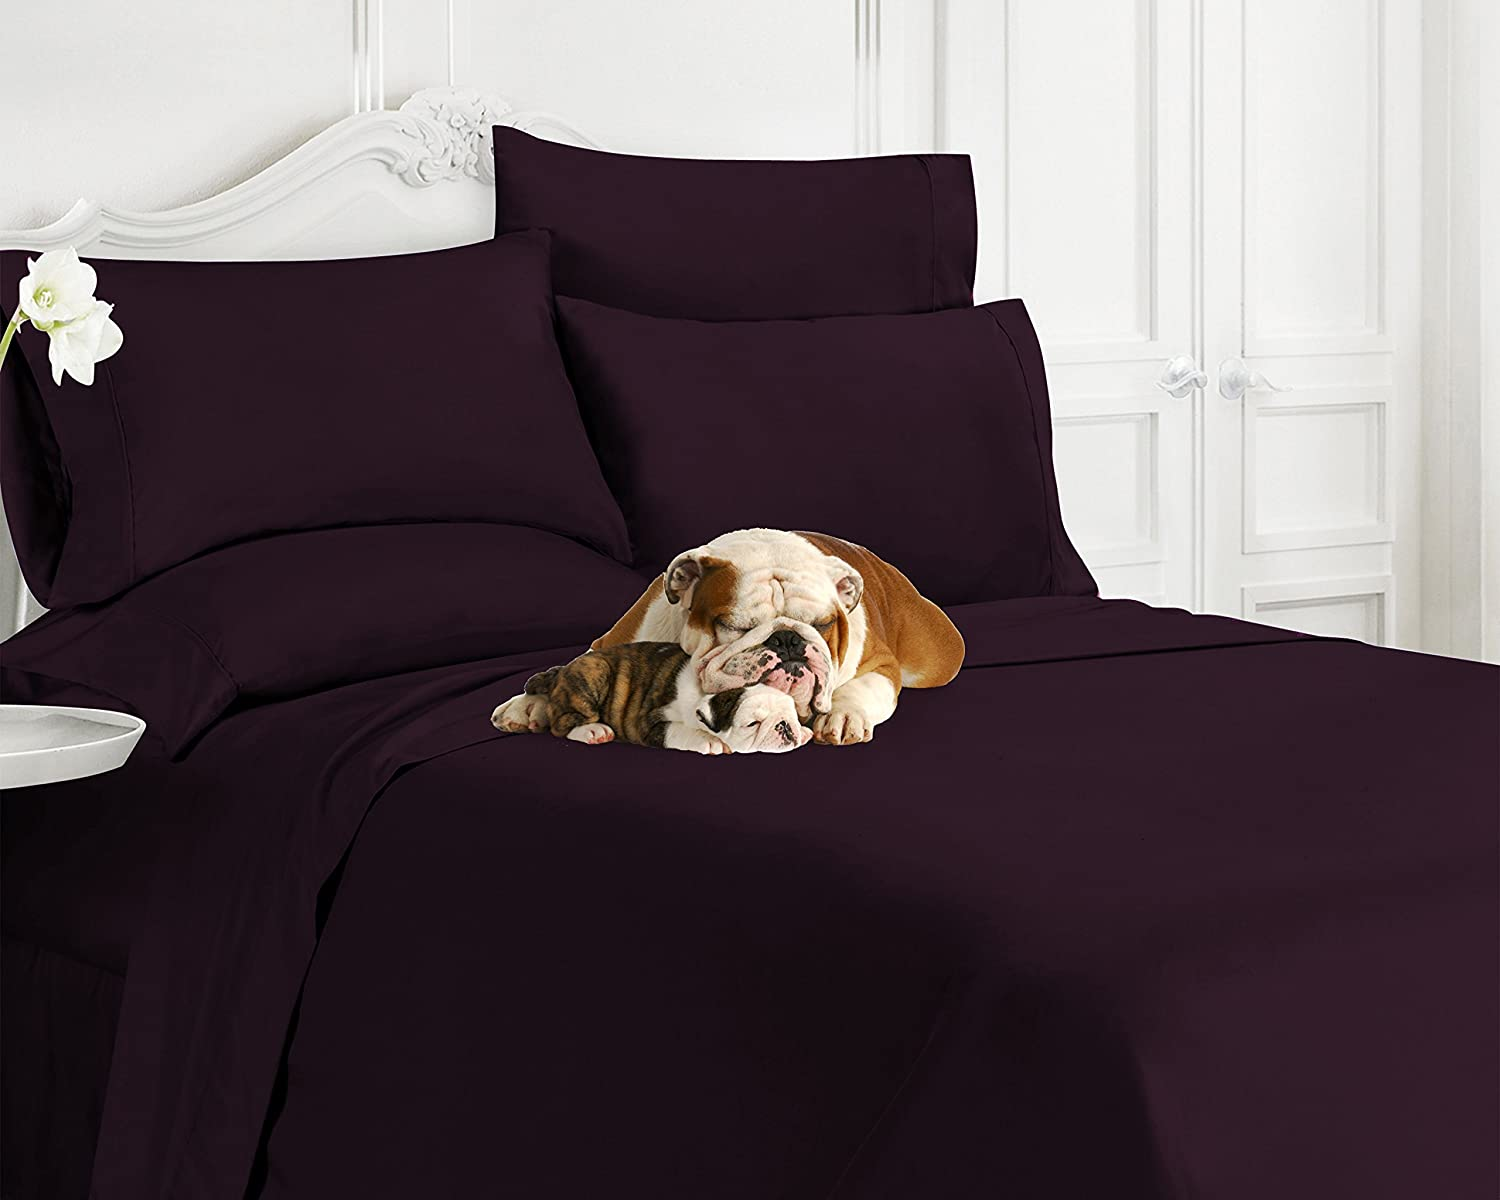 Swift Home Luxury Bedding Collection, Ultra-Soft Brushed Microfiber 6-Piece Bed Sheet Sets